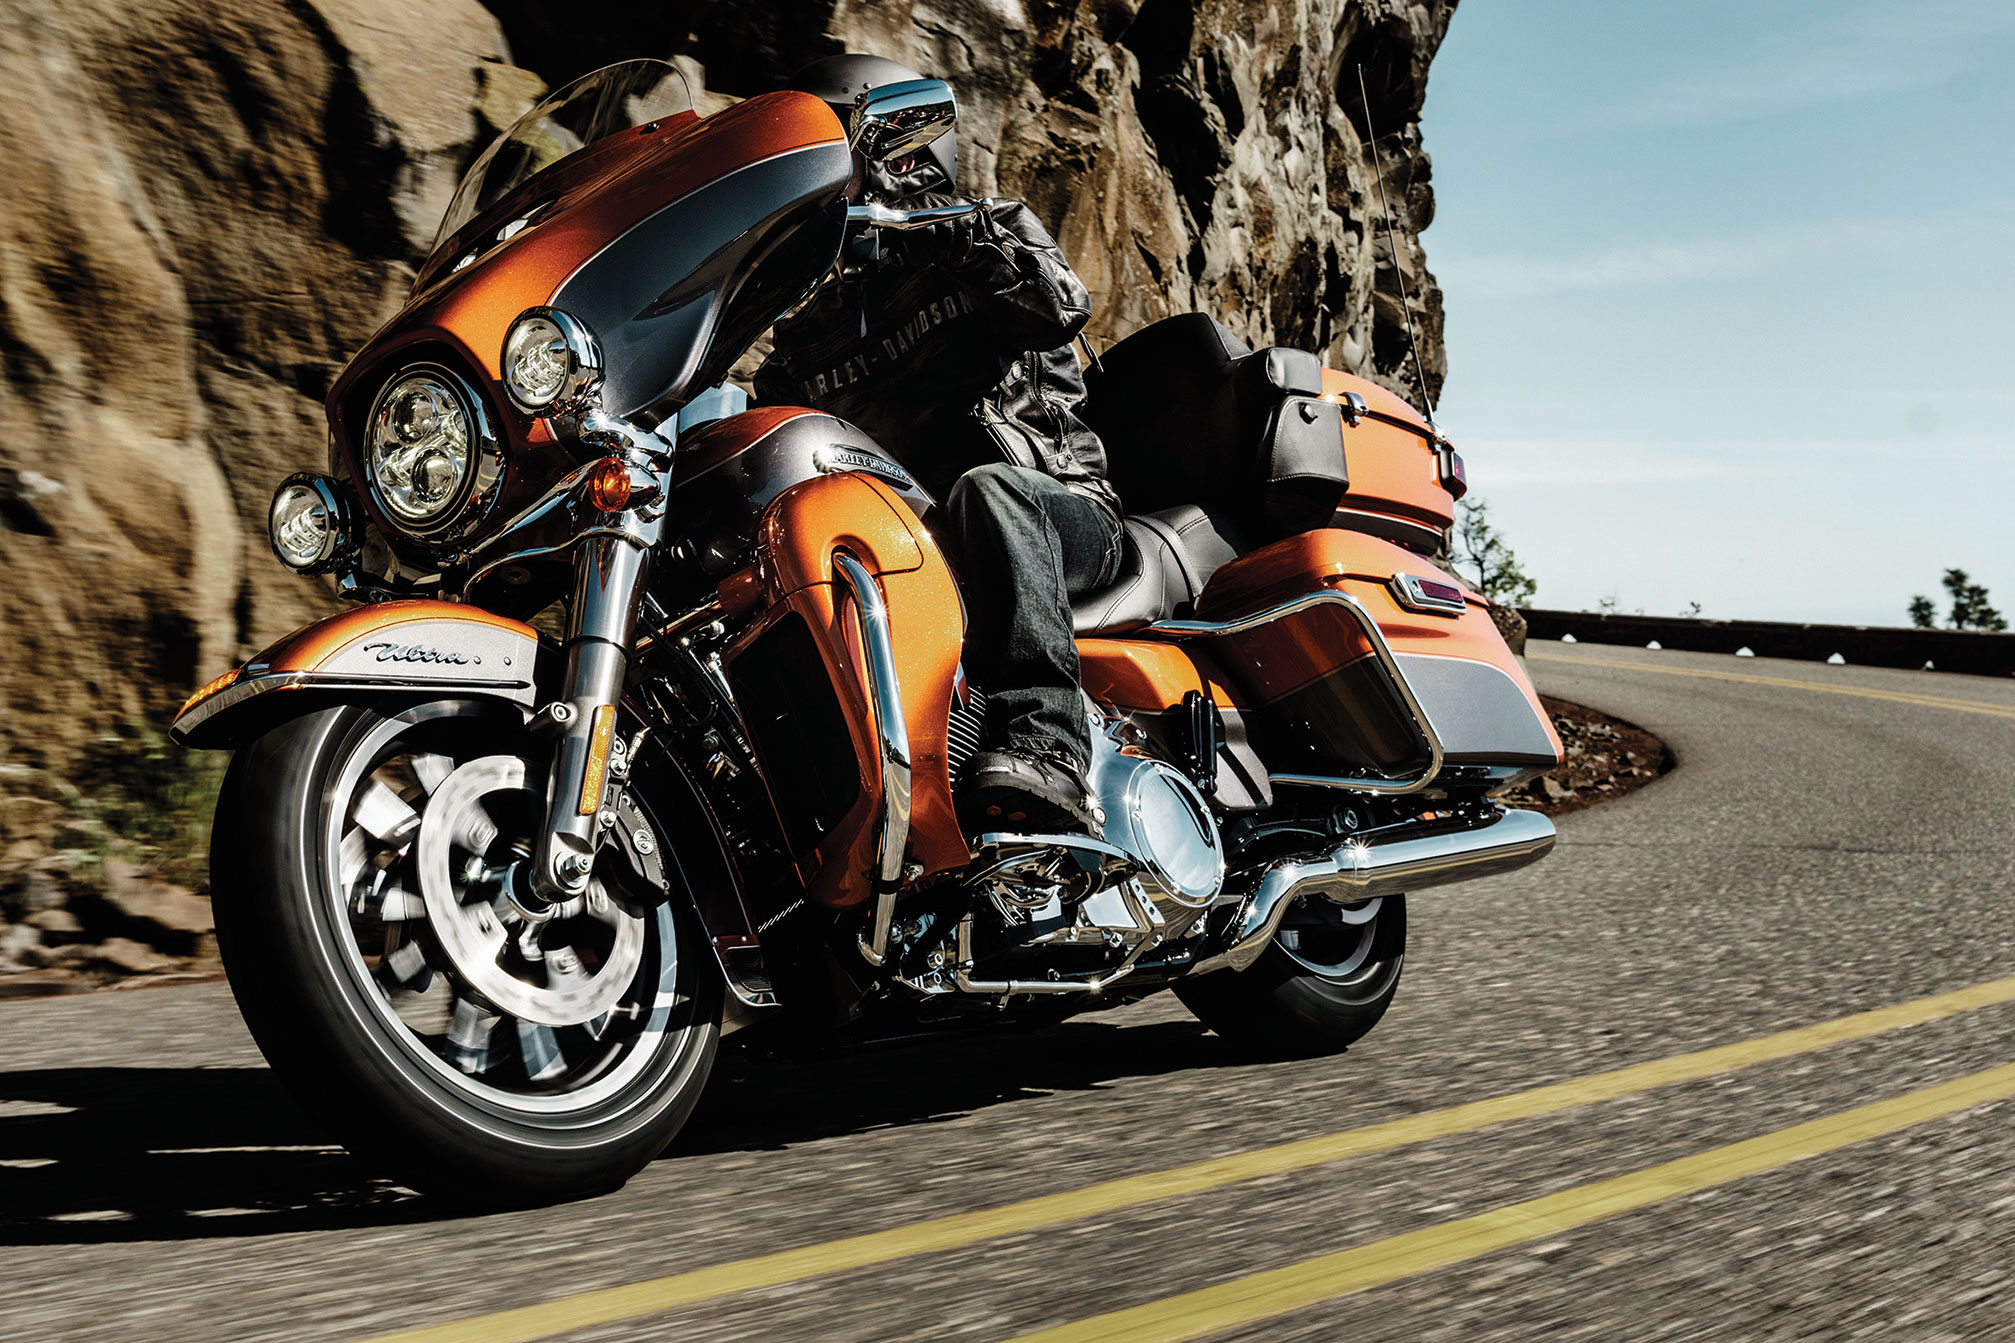 2015x1343 - Harley-Davidson Electra Glide Ultra Classic Wallpapers 4